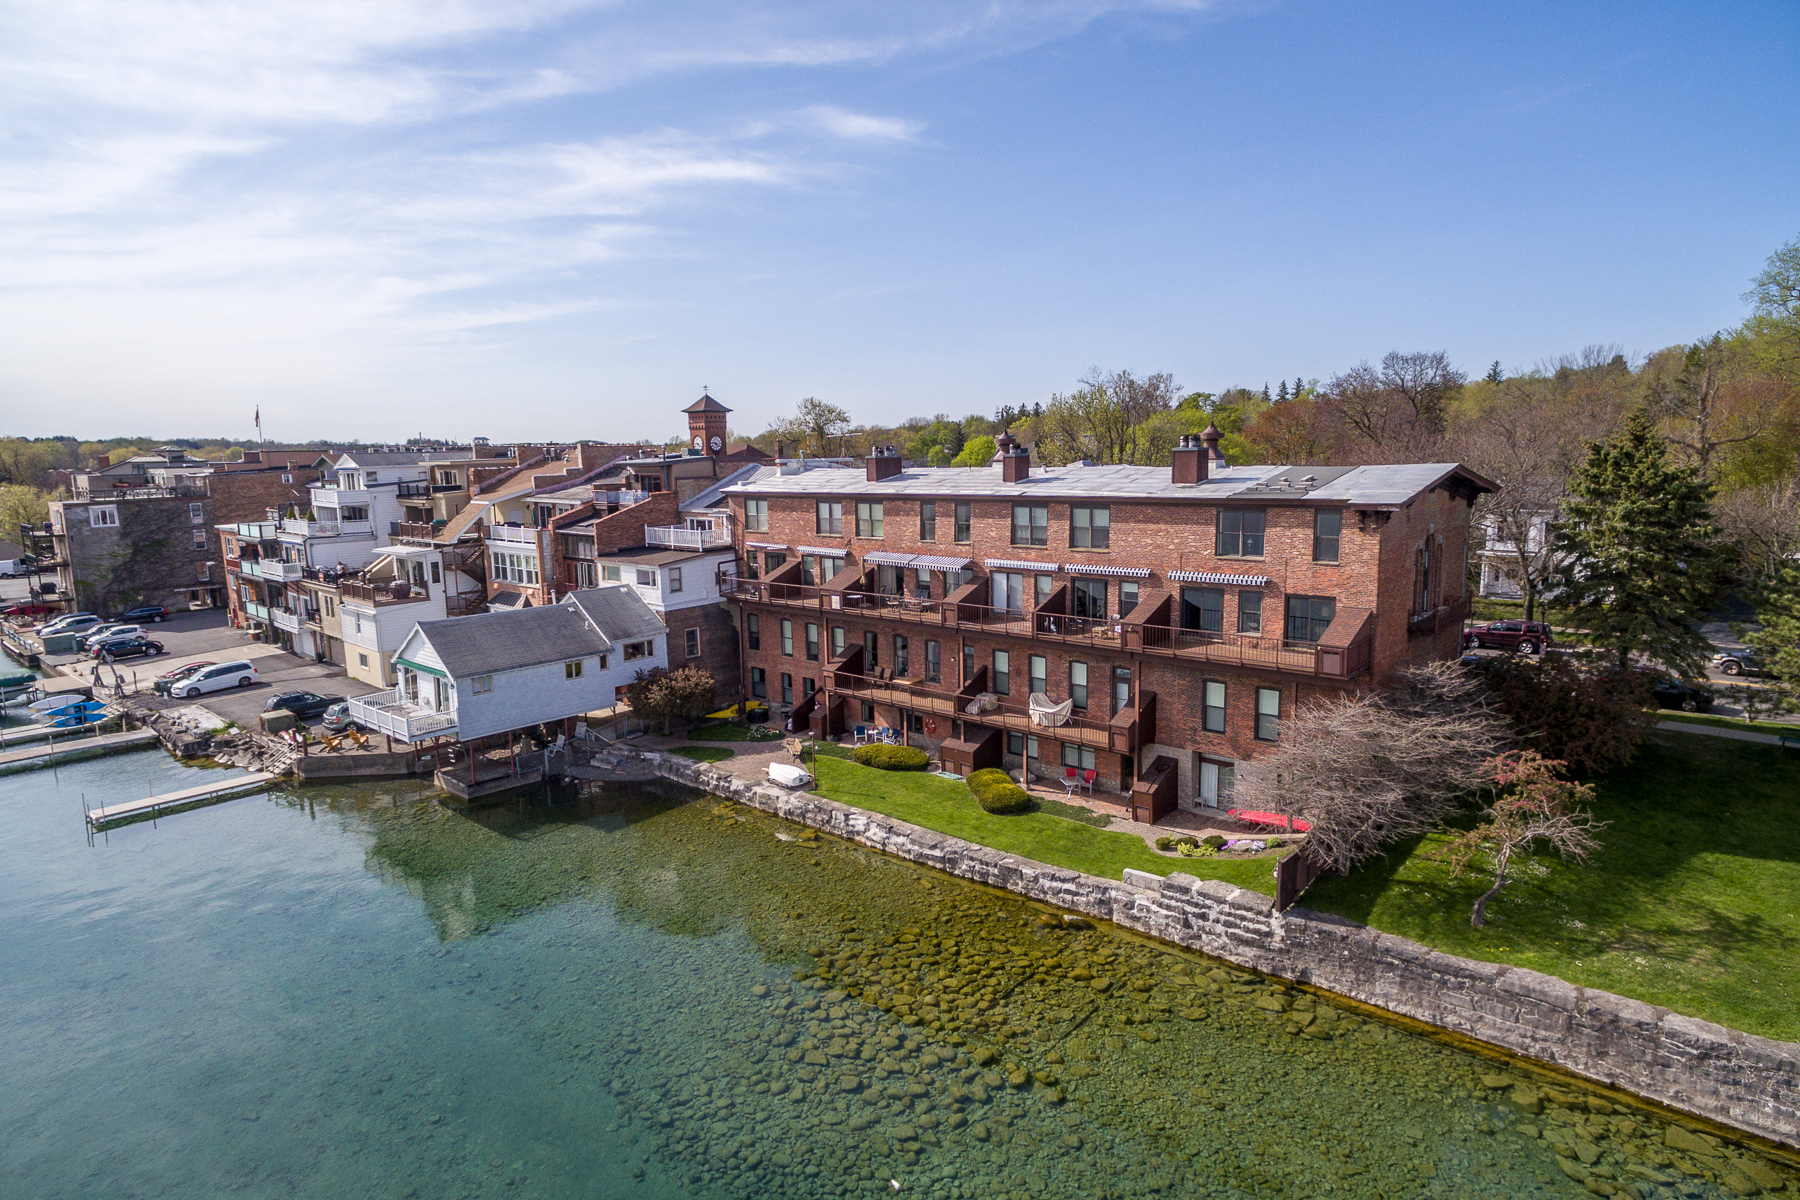 Additional photo for property listing at Village Lakefront Condo 84 E Genesee St Skaneateles, New York 13152 United States